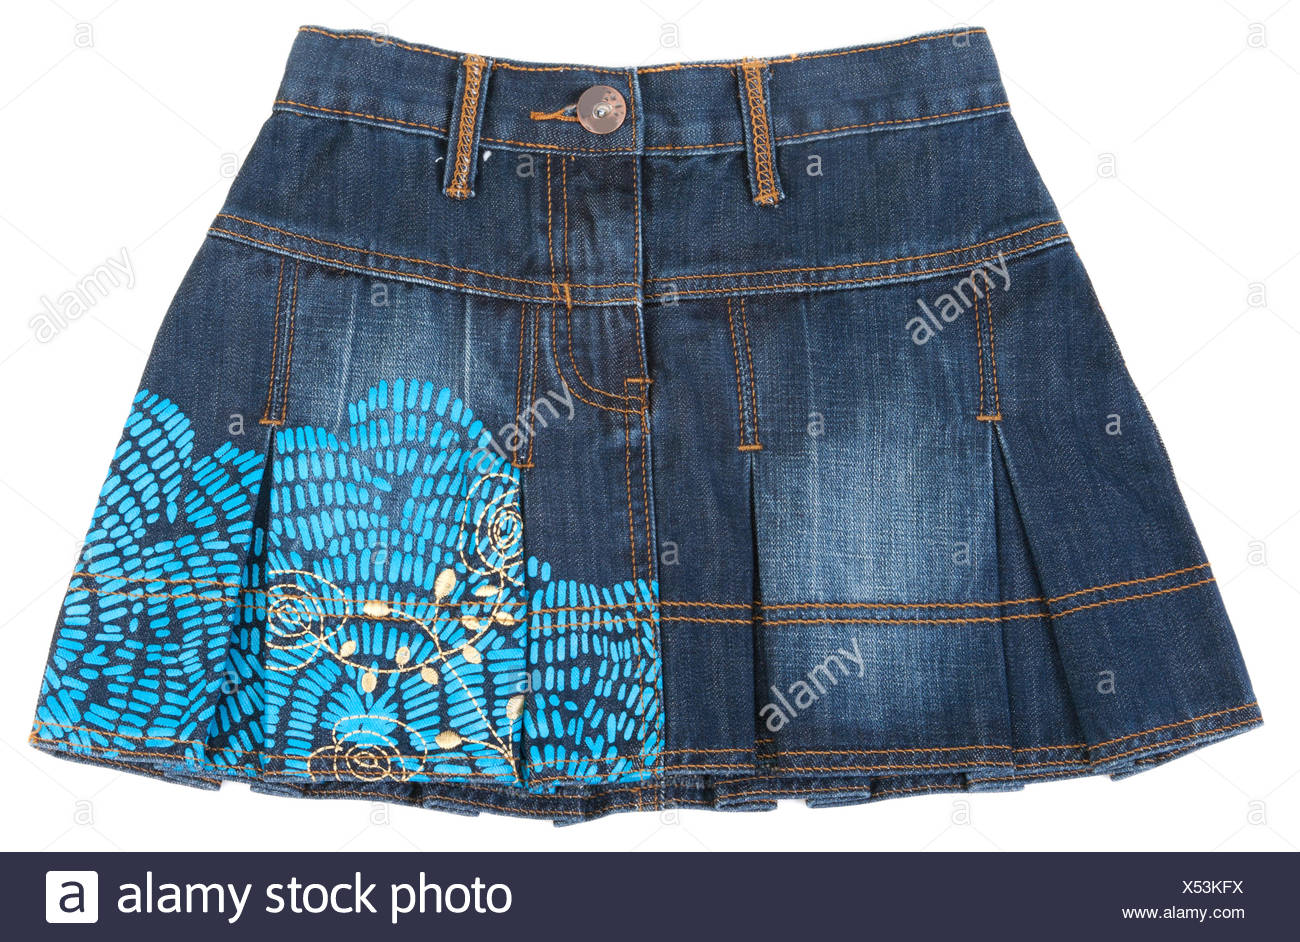 Jeans mini skirt insulated - Stock Image